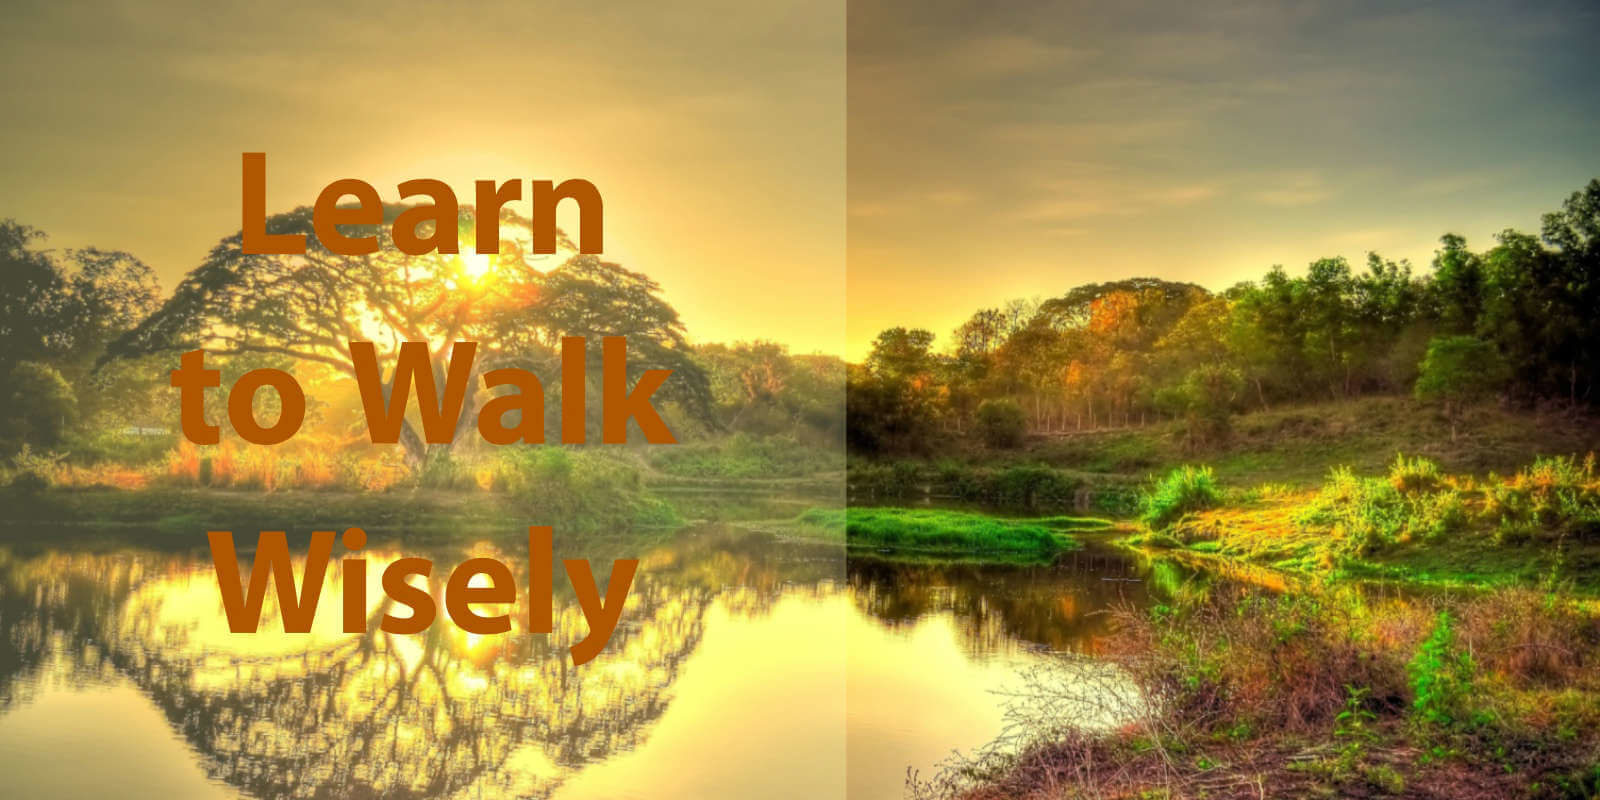 Learn to Walk Wisely